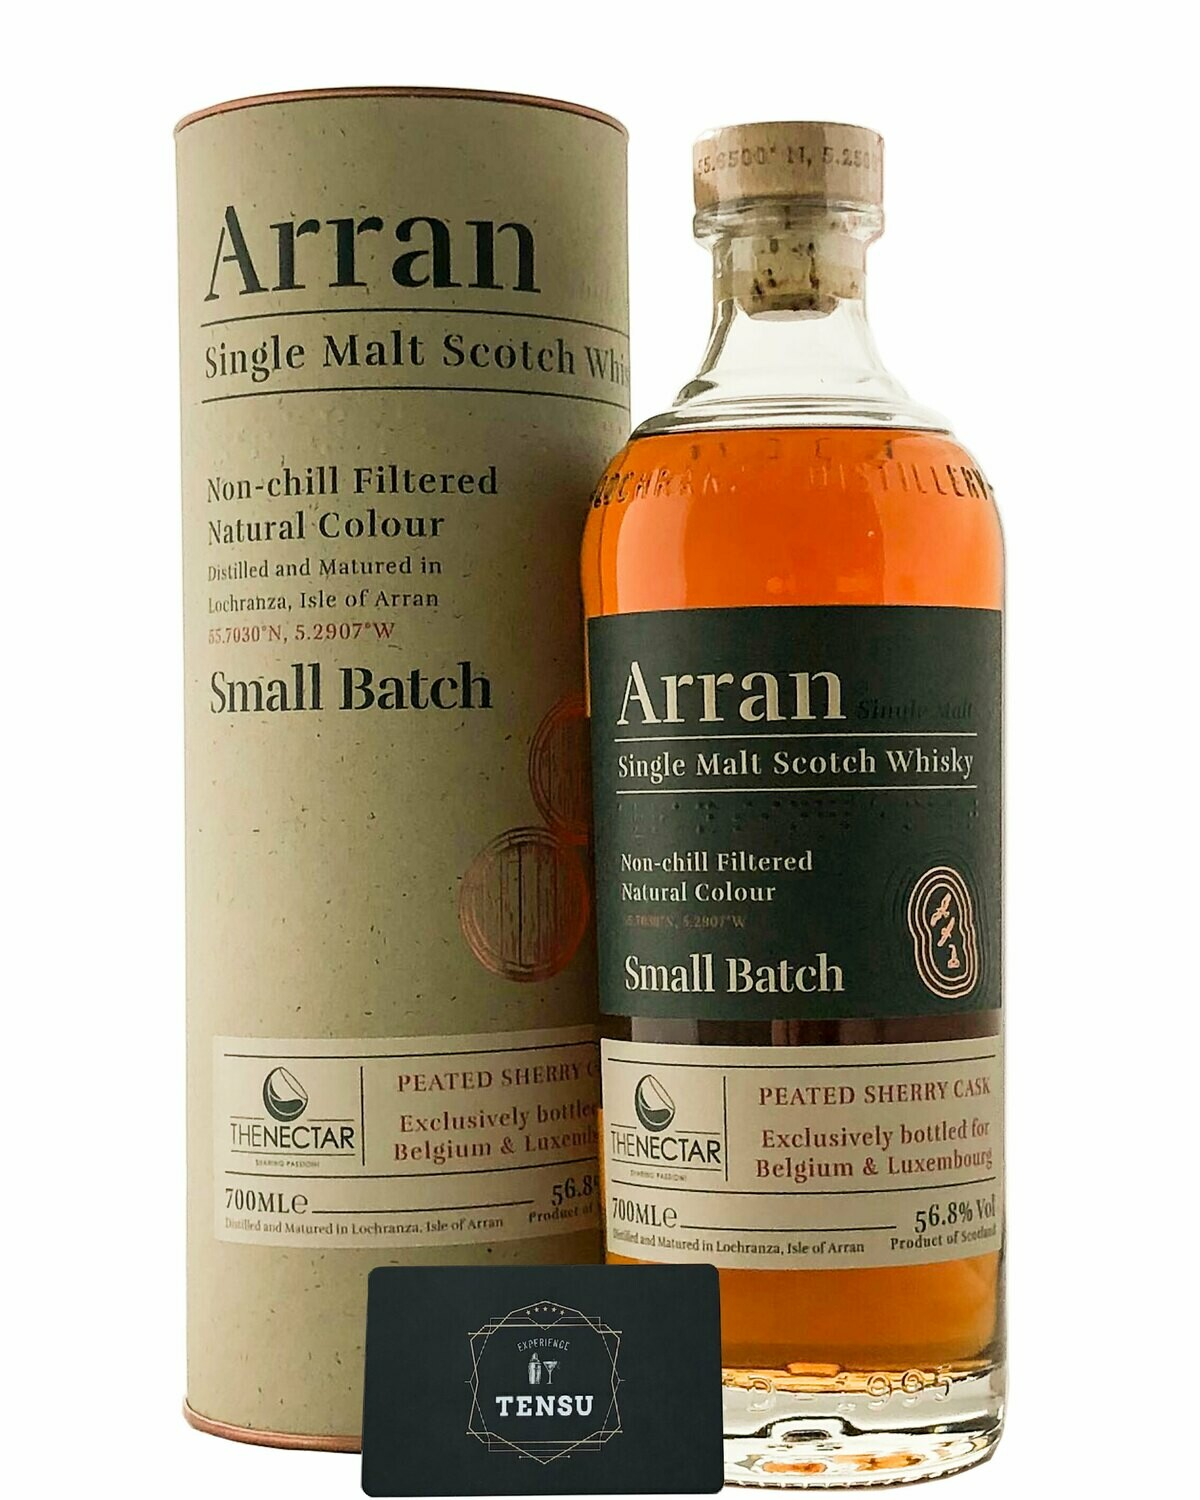 Arran Peated Sherry Cask - Small Batch (Belgium & Luxembourg) 56.8 FTN